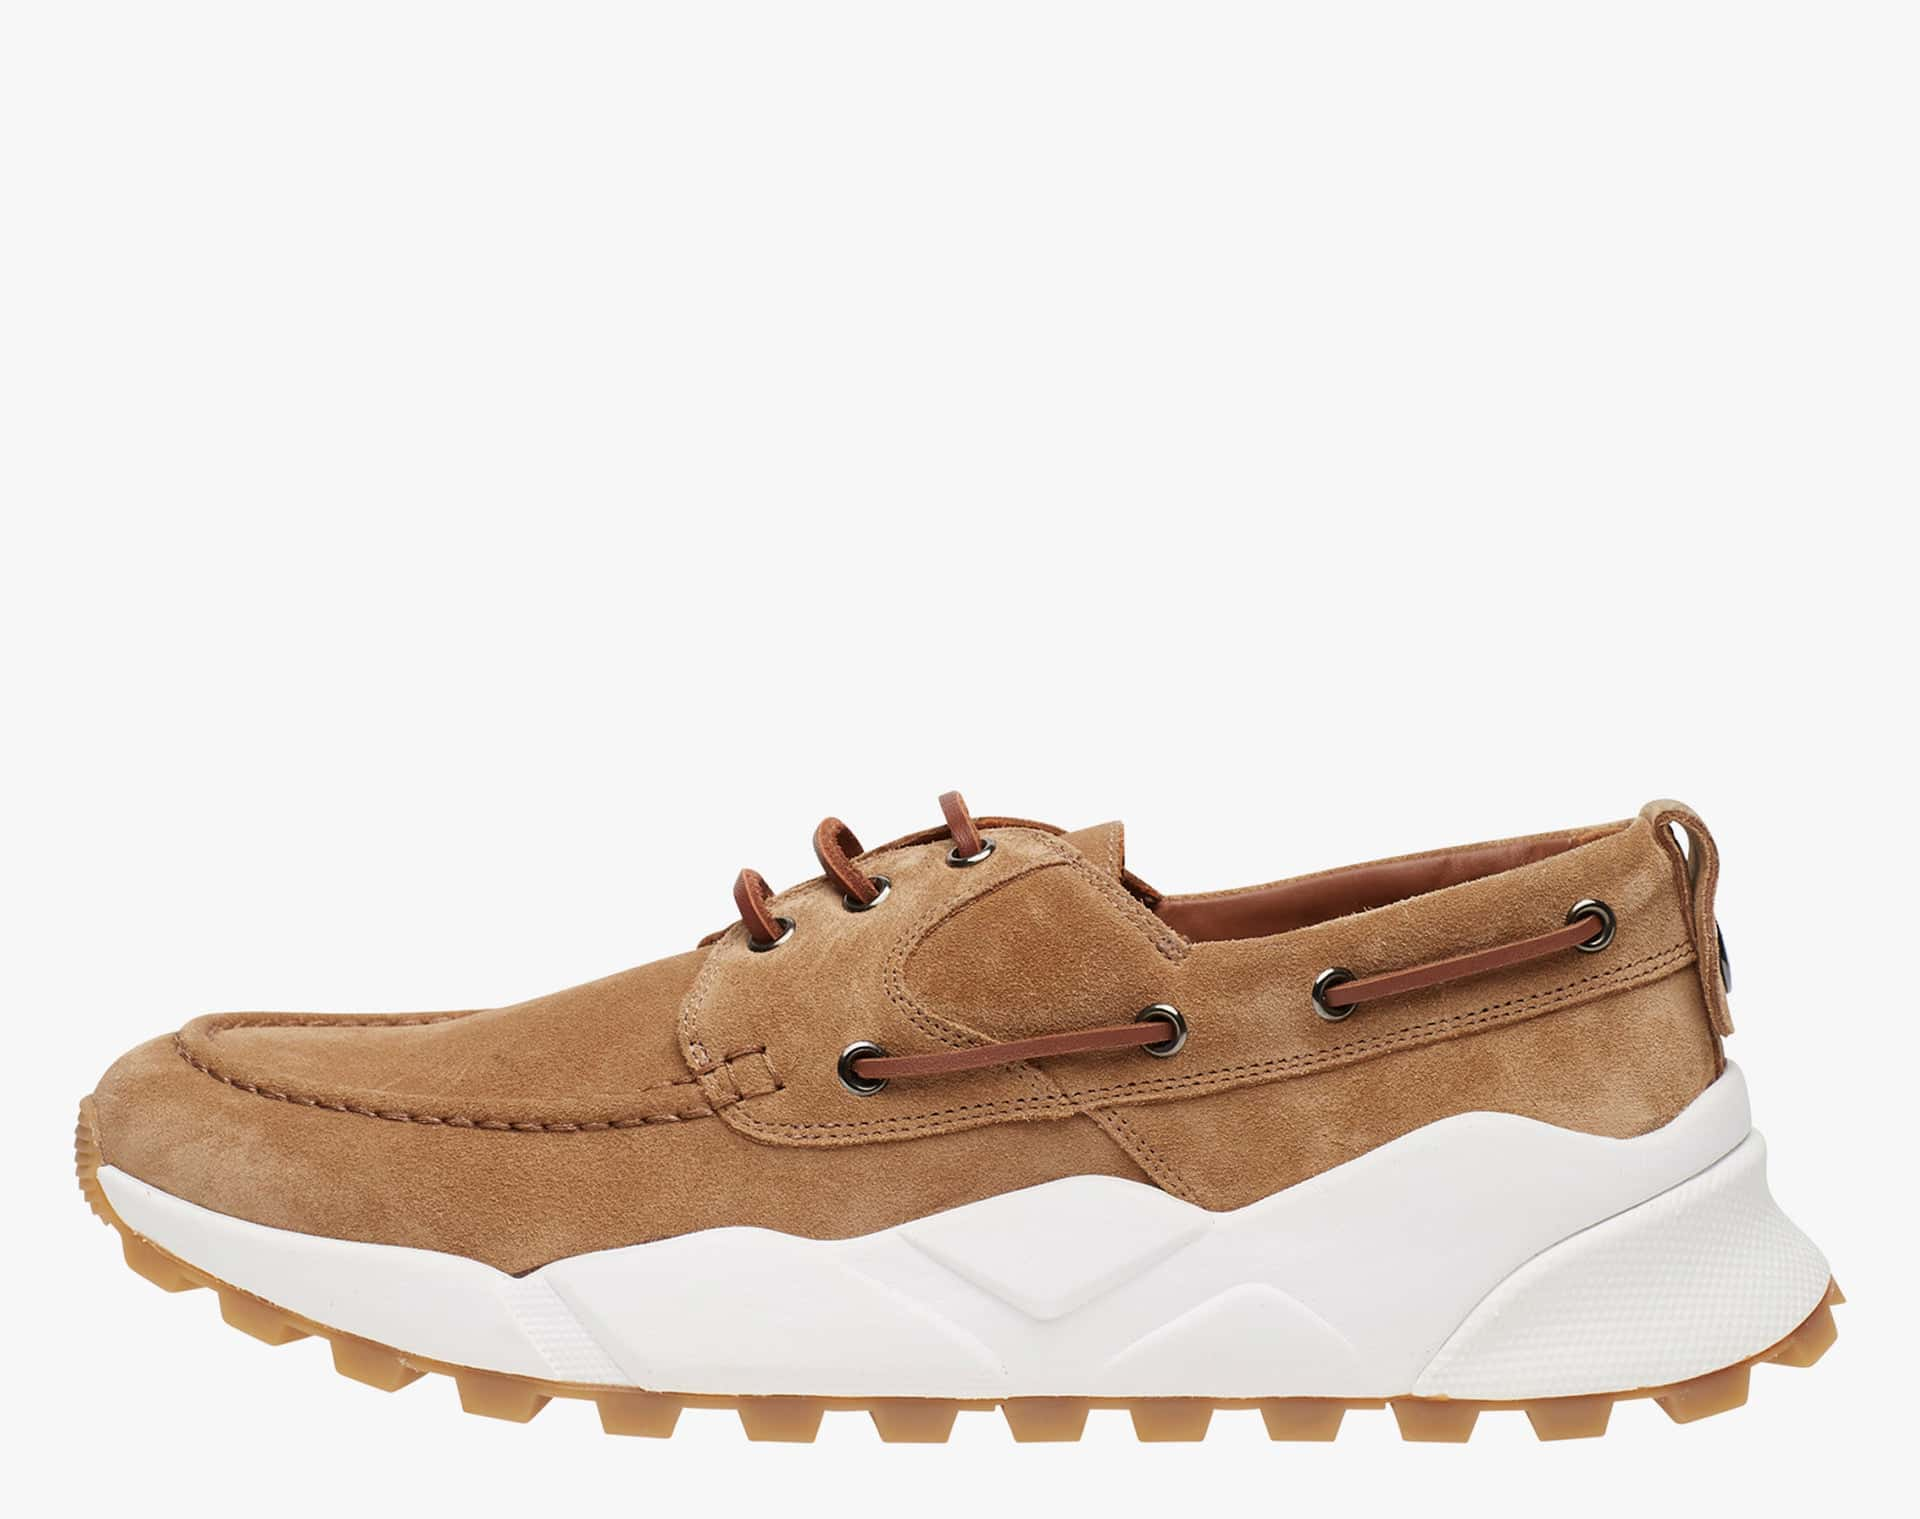 EXTREEMER - Suede sailor sneakers - Tobacco